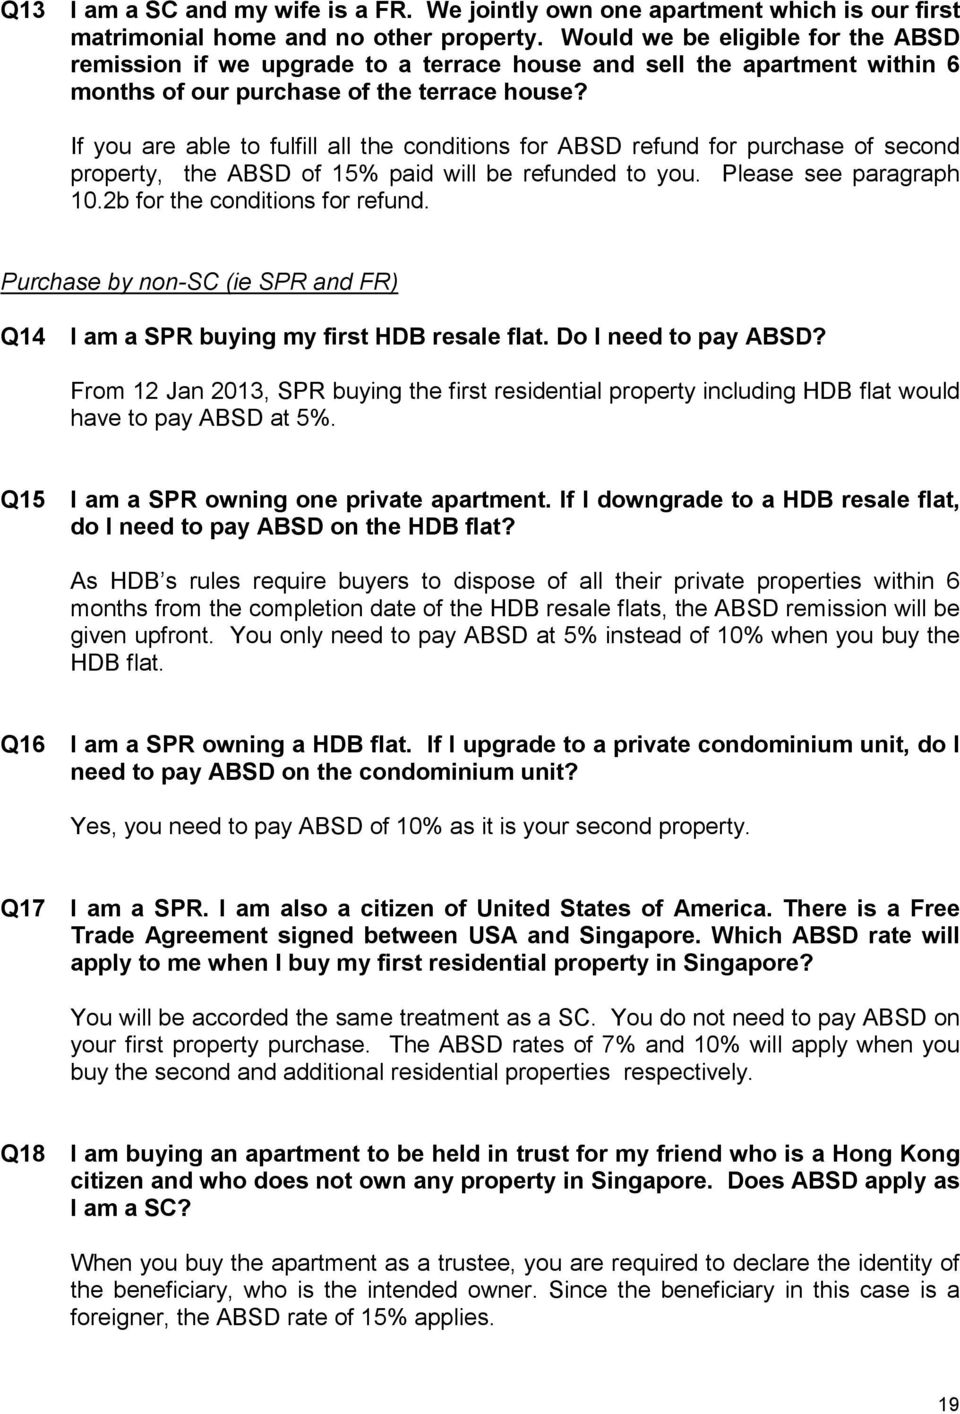 If you are able to fulfill all the conditions for ABSD refund for purchase of second property, the ABSD of 15% paid will be refunded to you. Please see paragraph 10.2b for the conditions for refund.